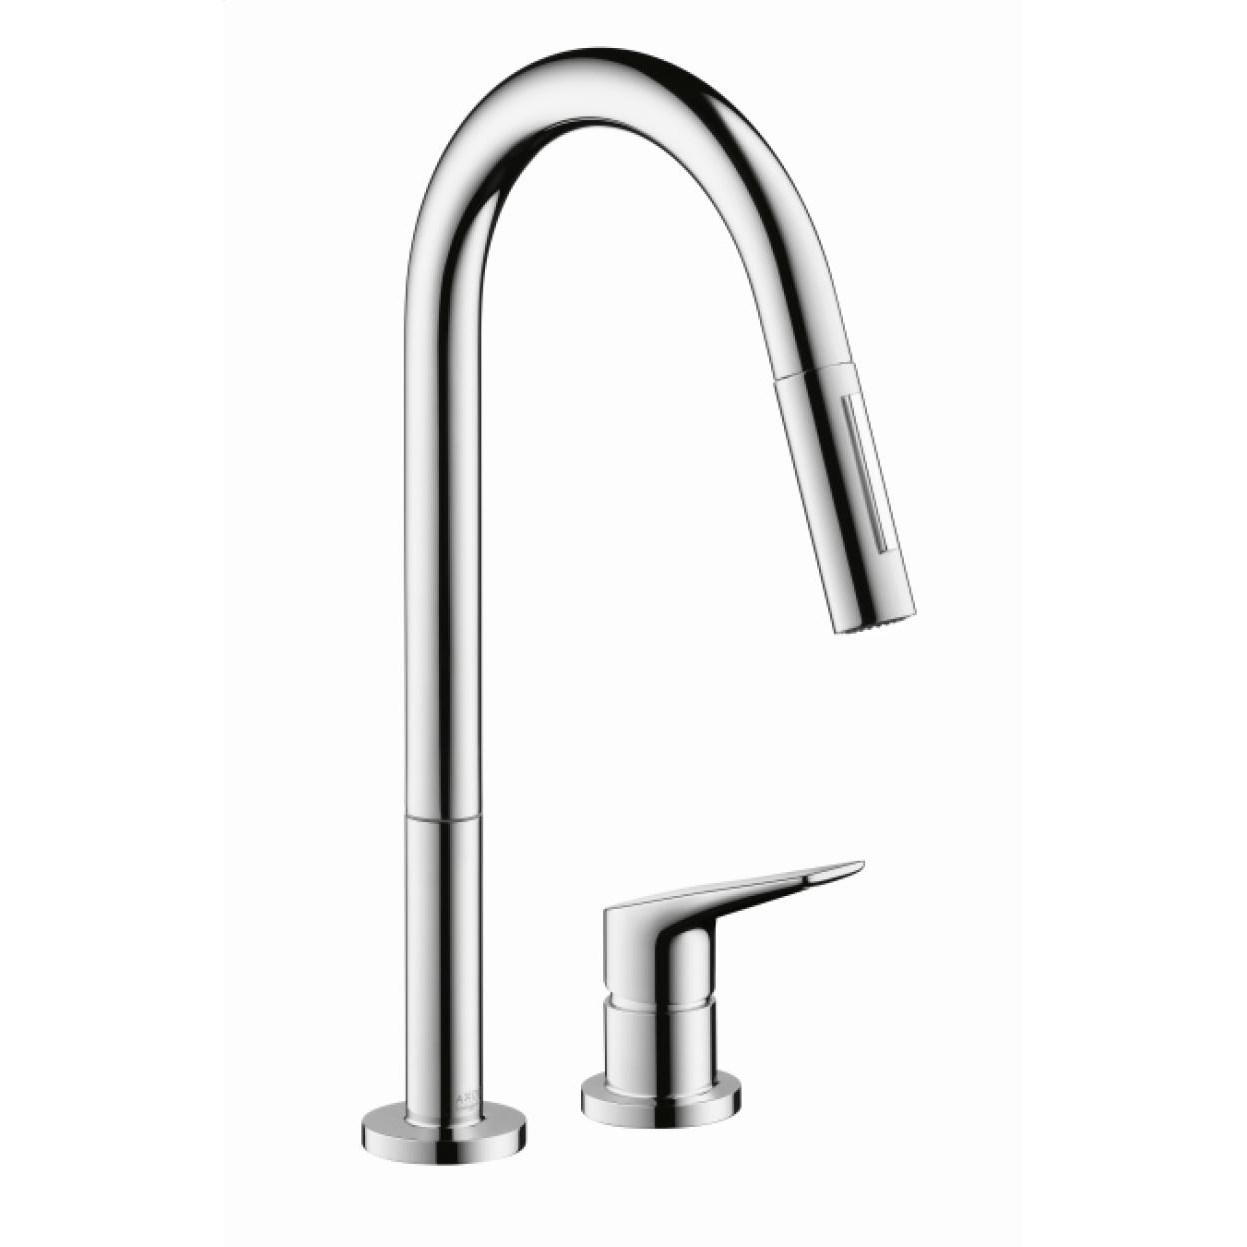 Ideas, hansgrohe axor bathroom sink faucets hansgrohe axor bathroom sink faucets hansgrohe 34822 axor citterio m two holes kitchen faucet 1247 x 1247  .